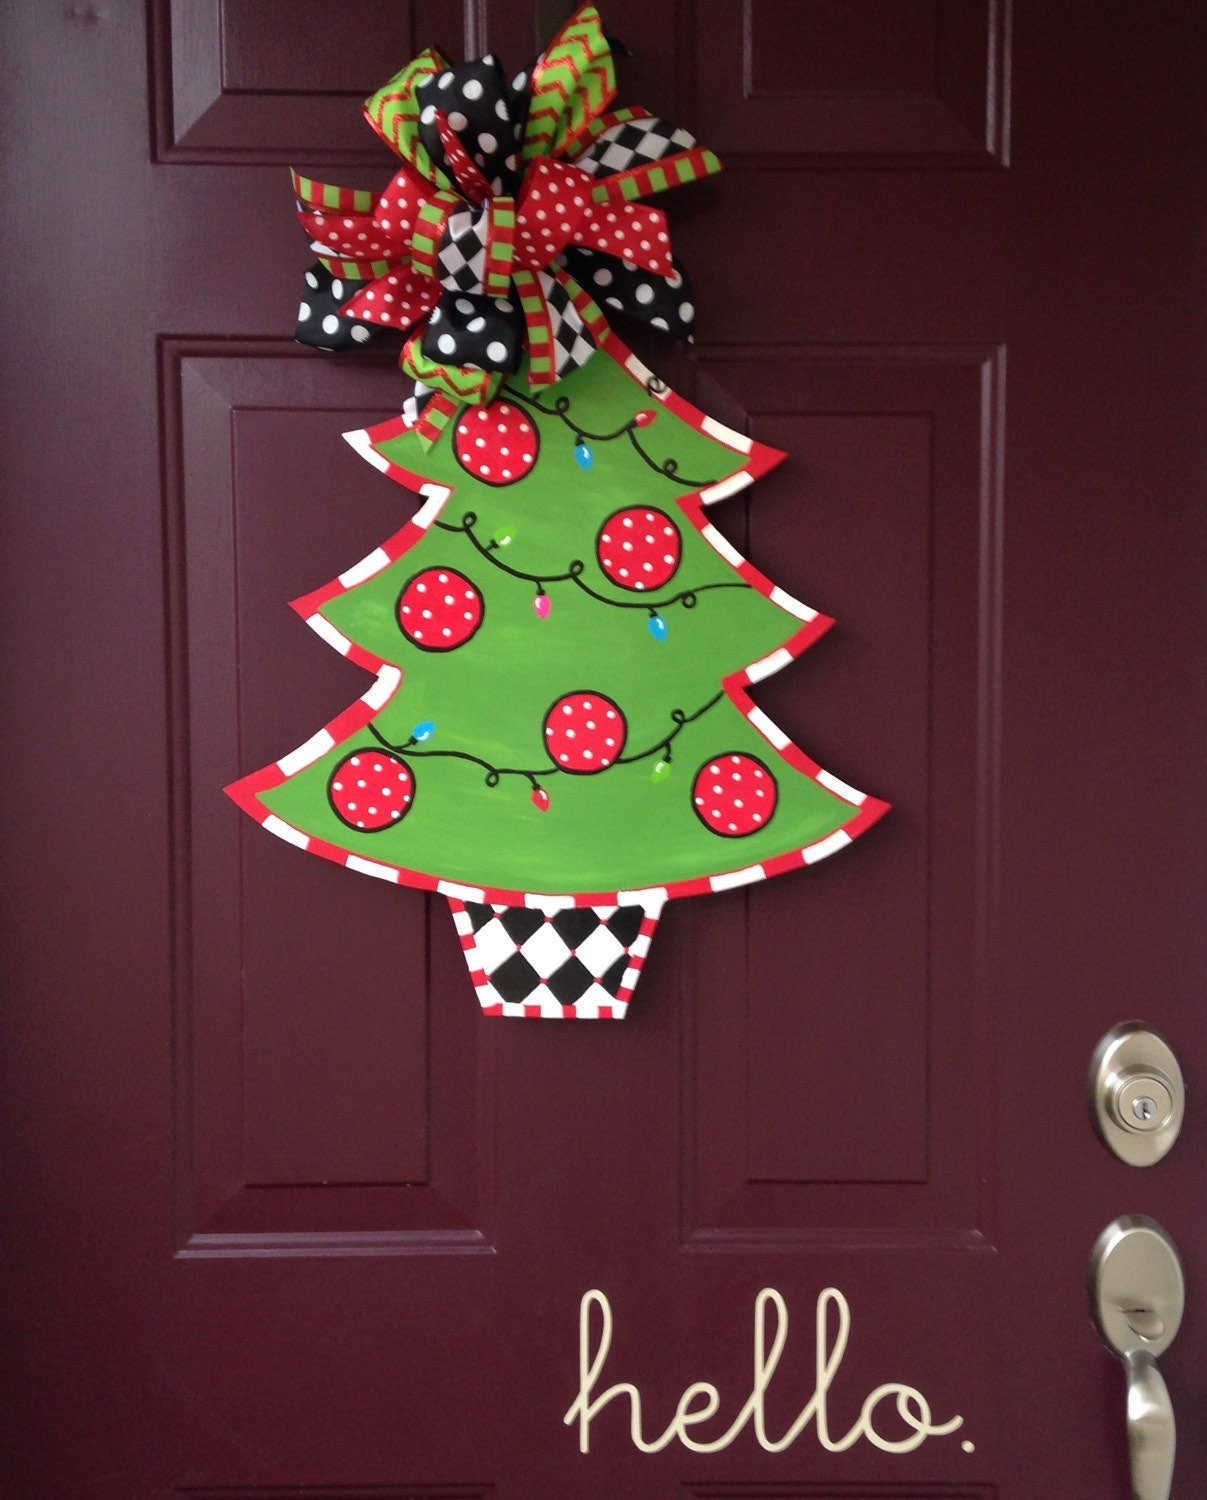 Christmas tree hand painted wooden door by